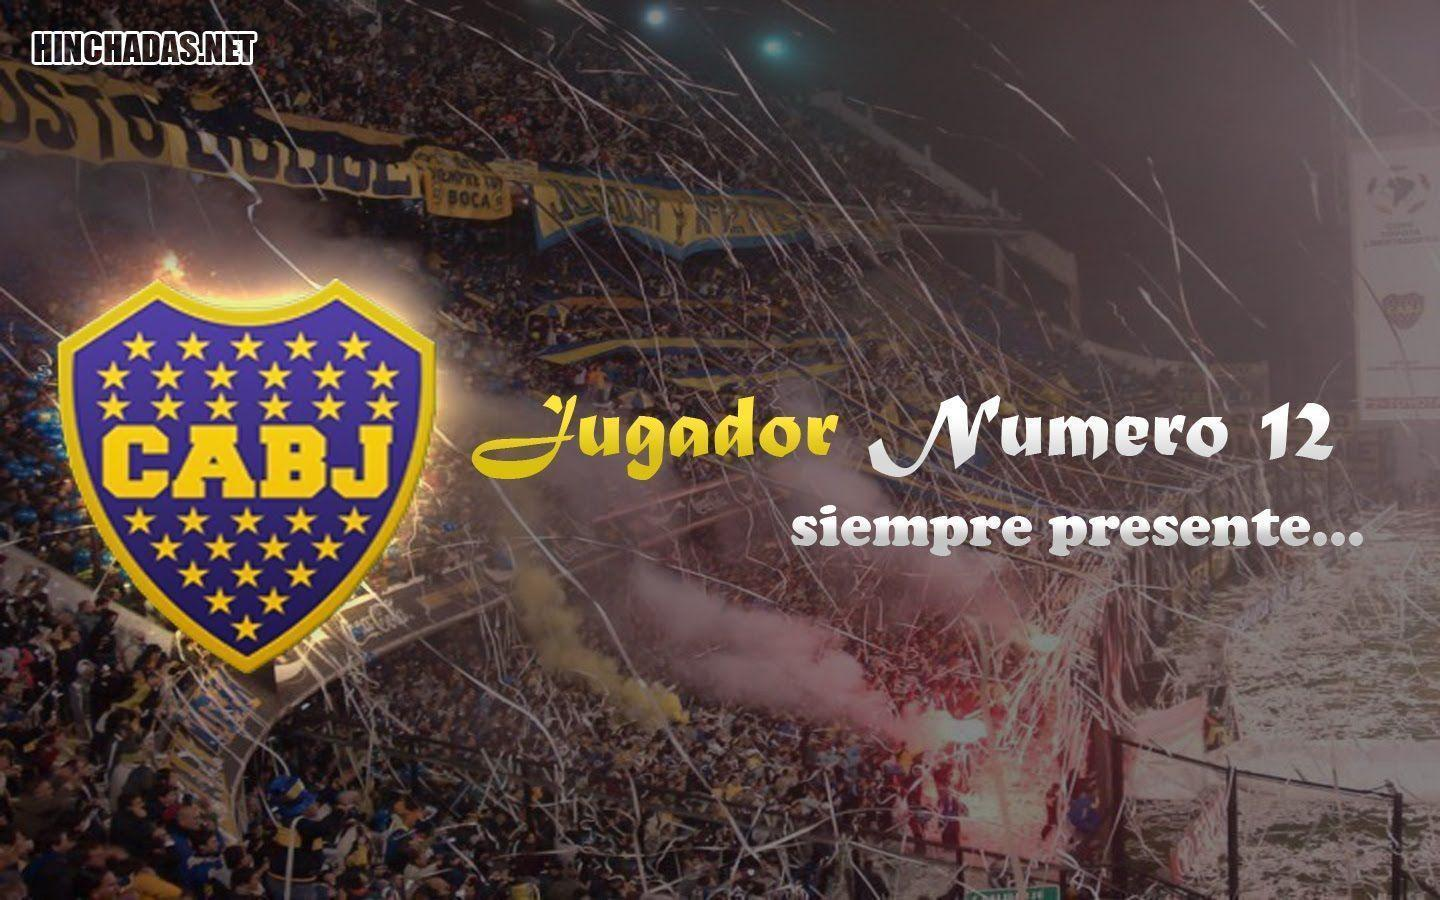 kane blog picz: Wallpapers Boca Juniors Hd